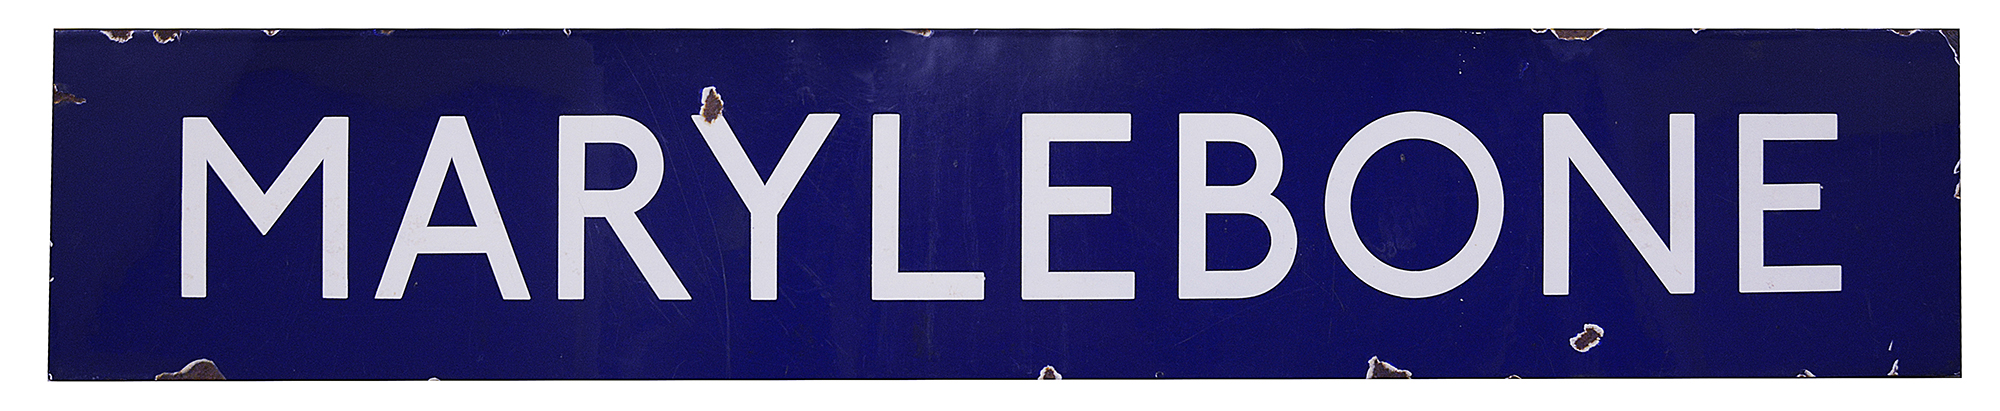 A London Underground enamel station sign for Marylebone,with white lettering on a blue